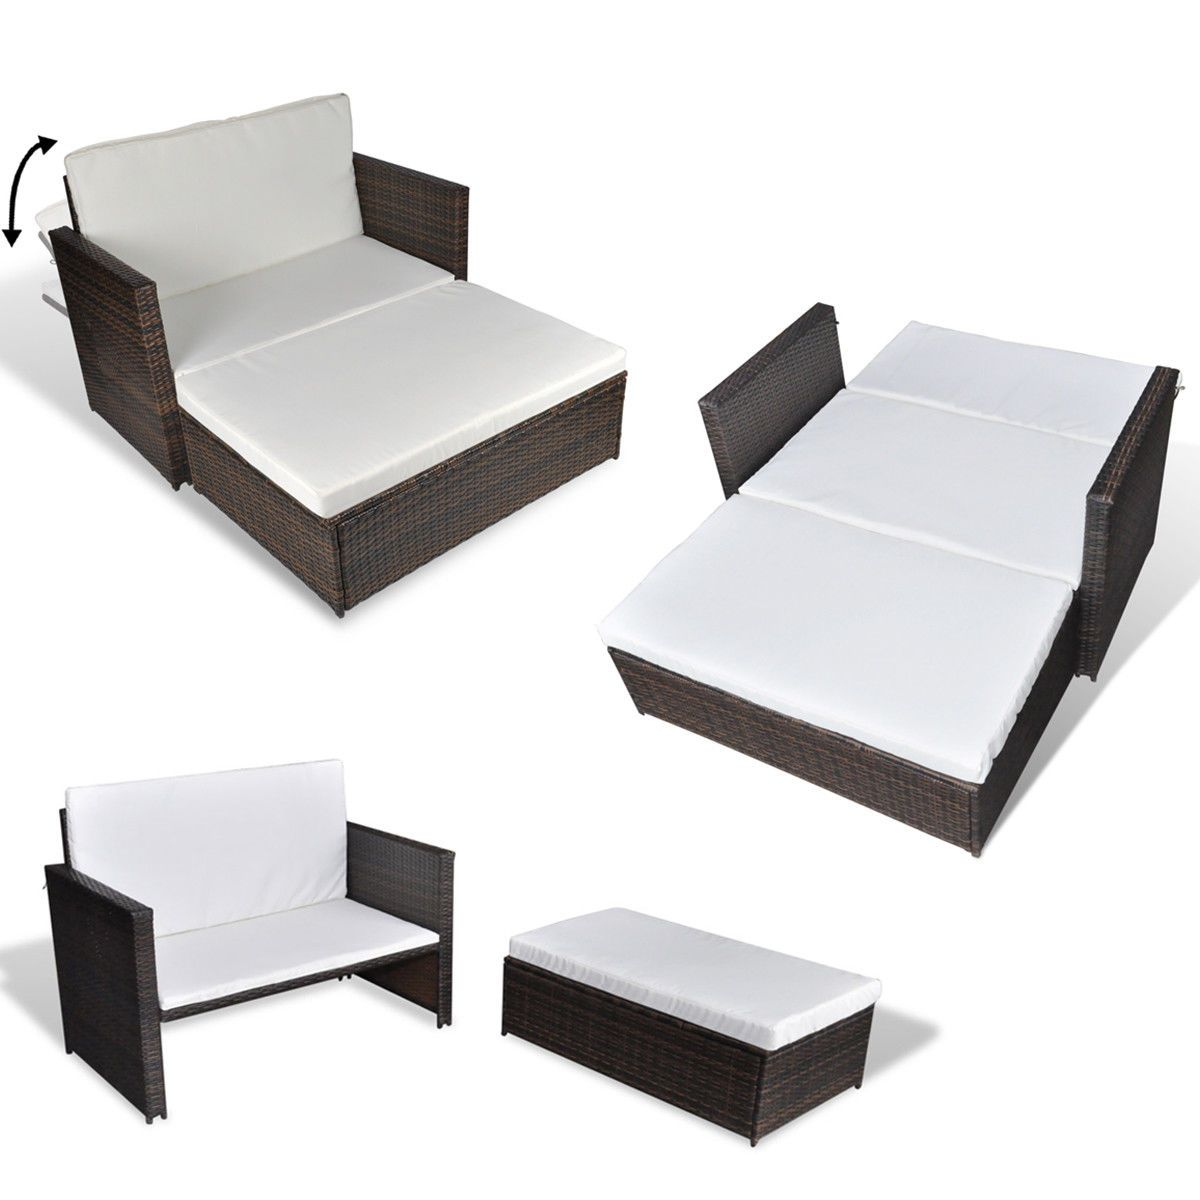 Item specifics     Condition:        New: A brand-new, unused, unopened, undamaged item in its original packaging (where packaging is    ... - #PatioandDeck https://lastreviews.net/outdoor/patio-and-deck/patio-3-in-1-rattan-wicker-foldable-sofa-bed-set-outdoor-furniture-brownblack/